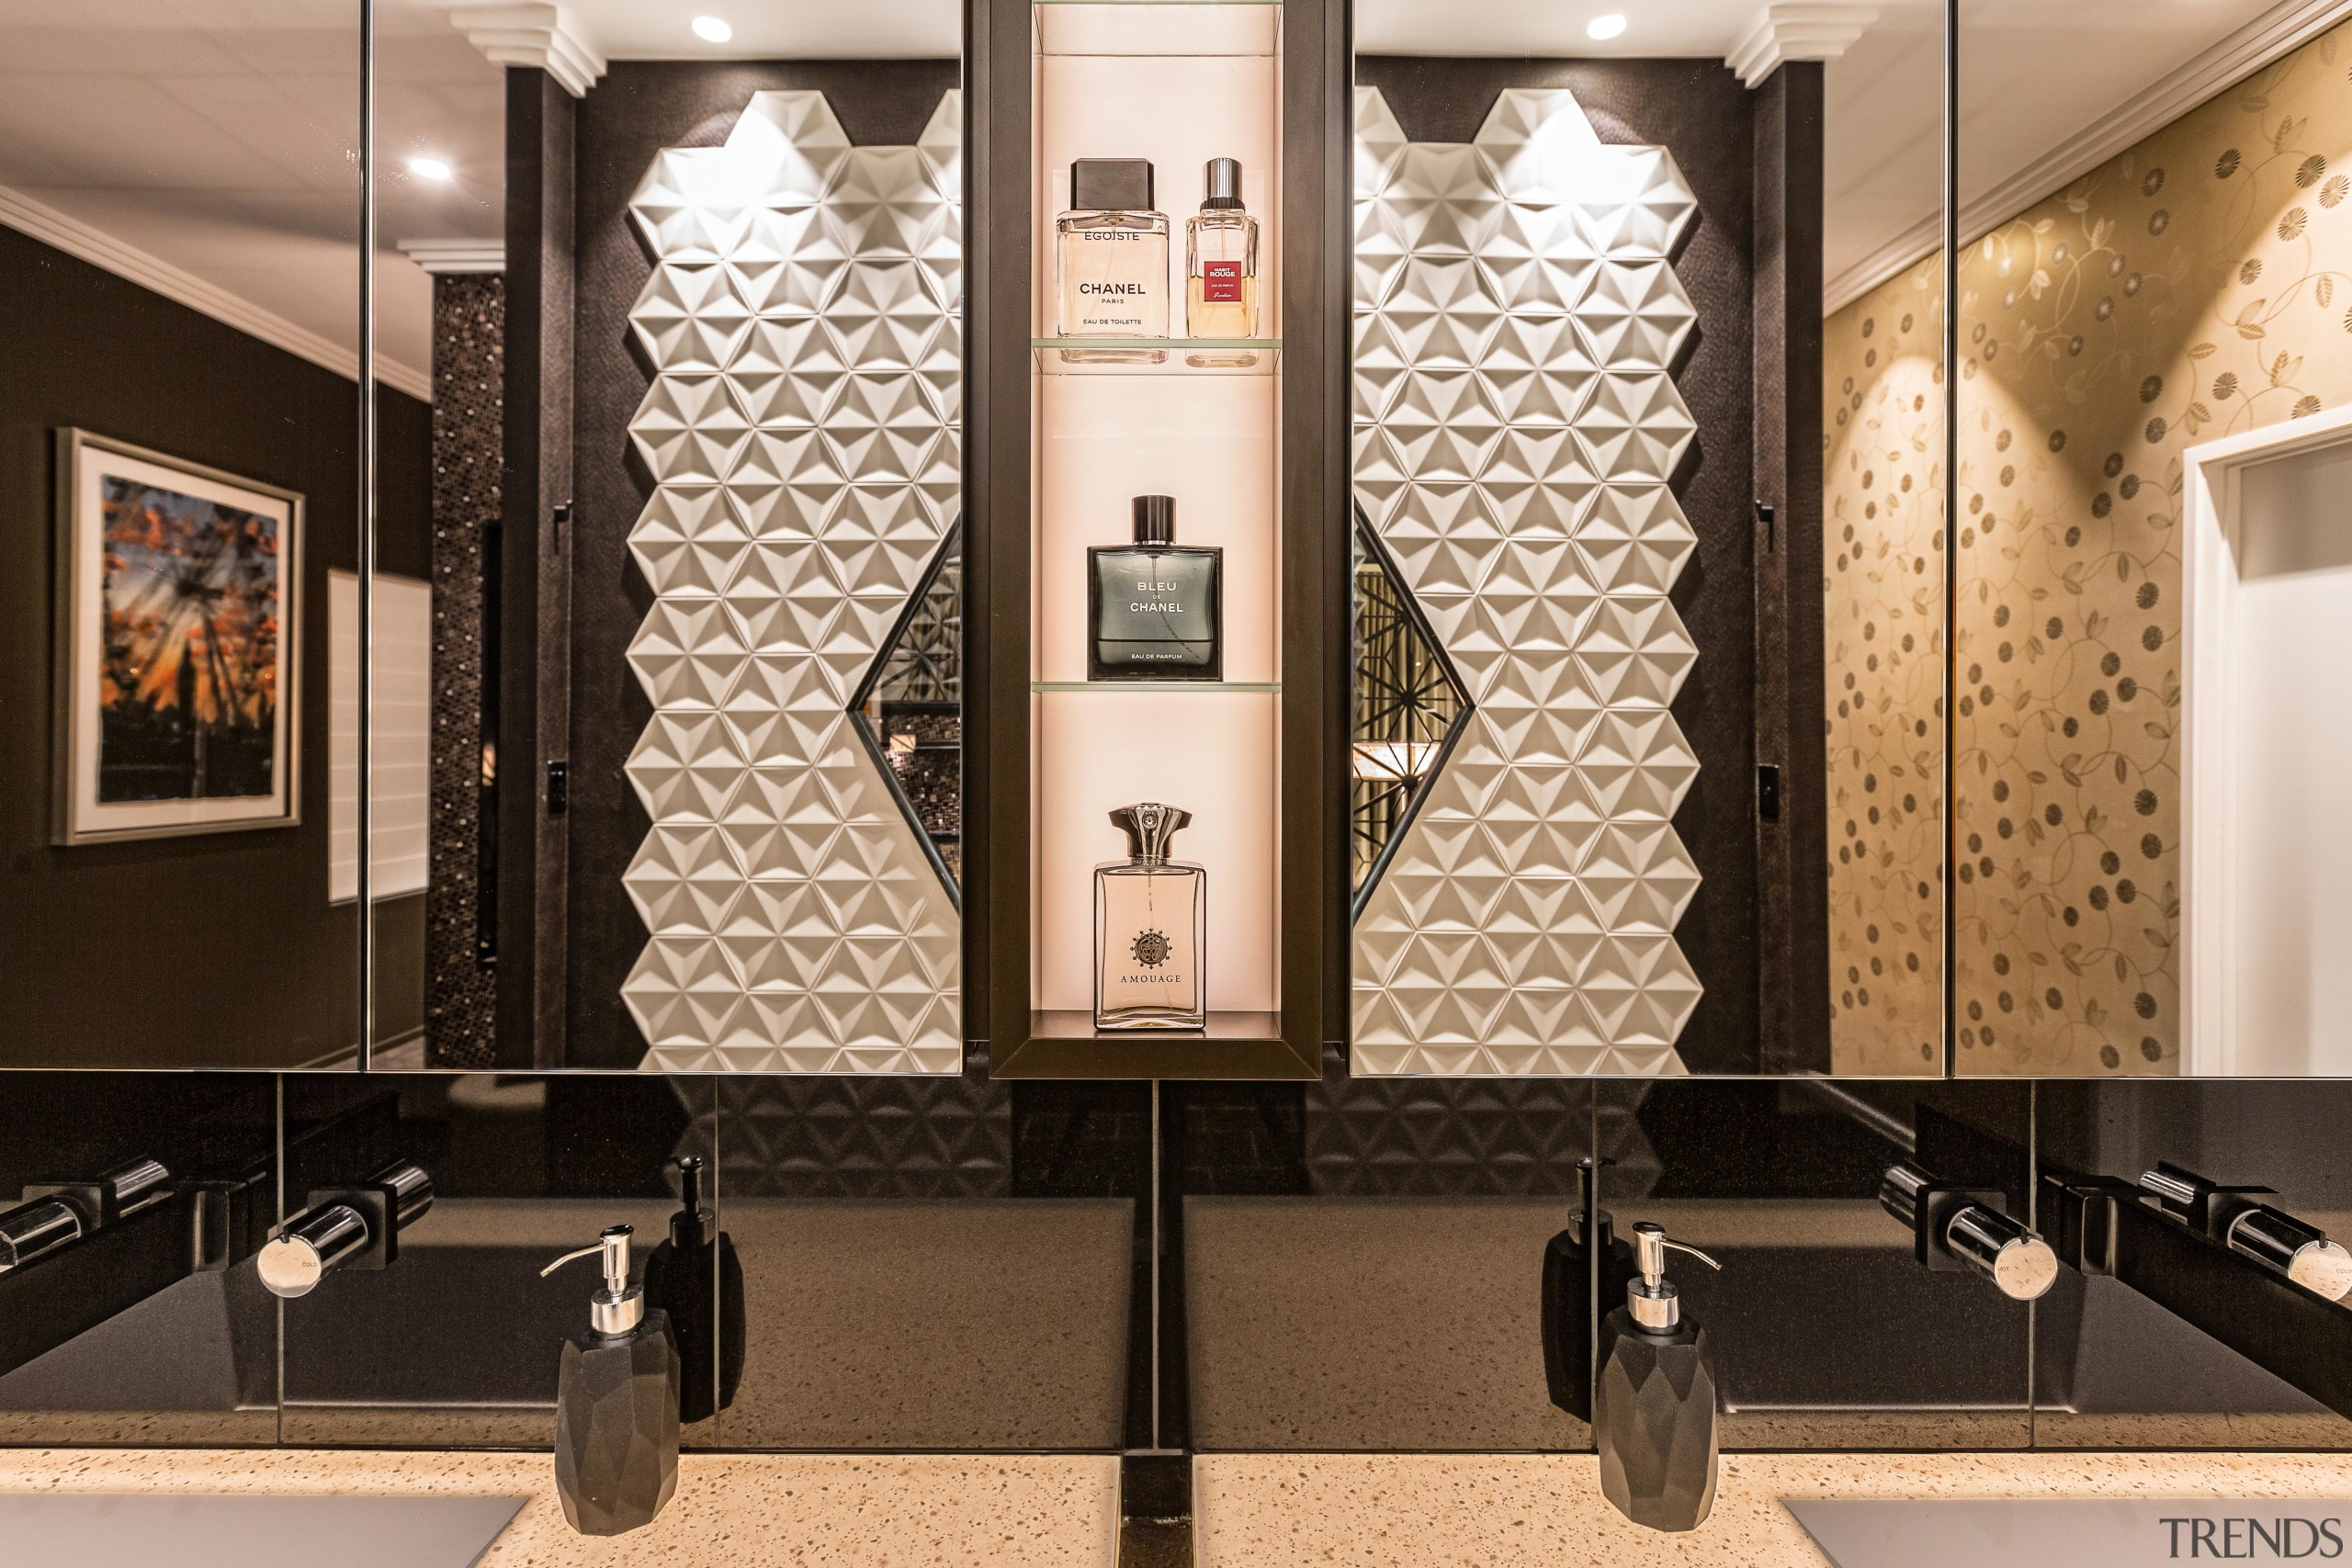 The mirror-fronted cabinet mirrors above the vanity reflect black